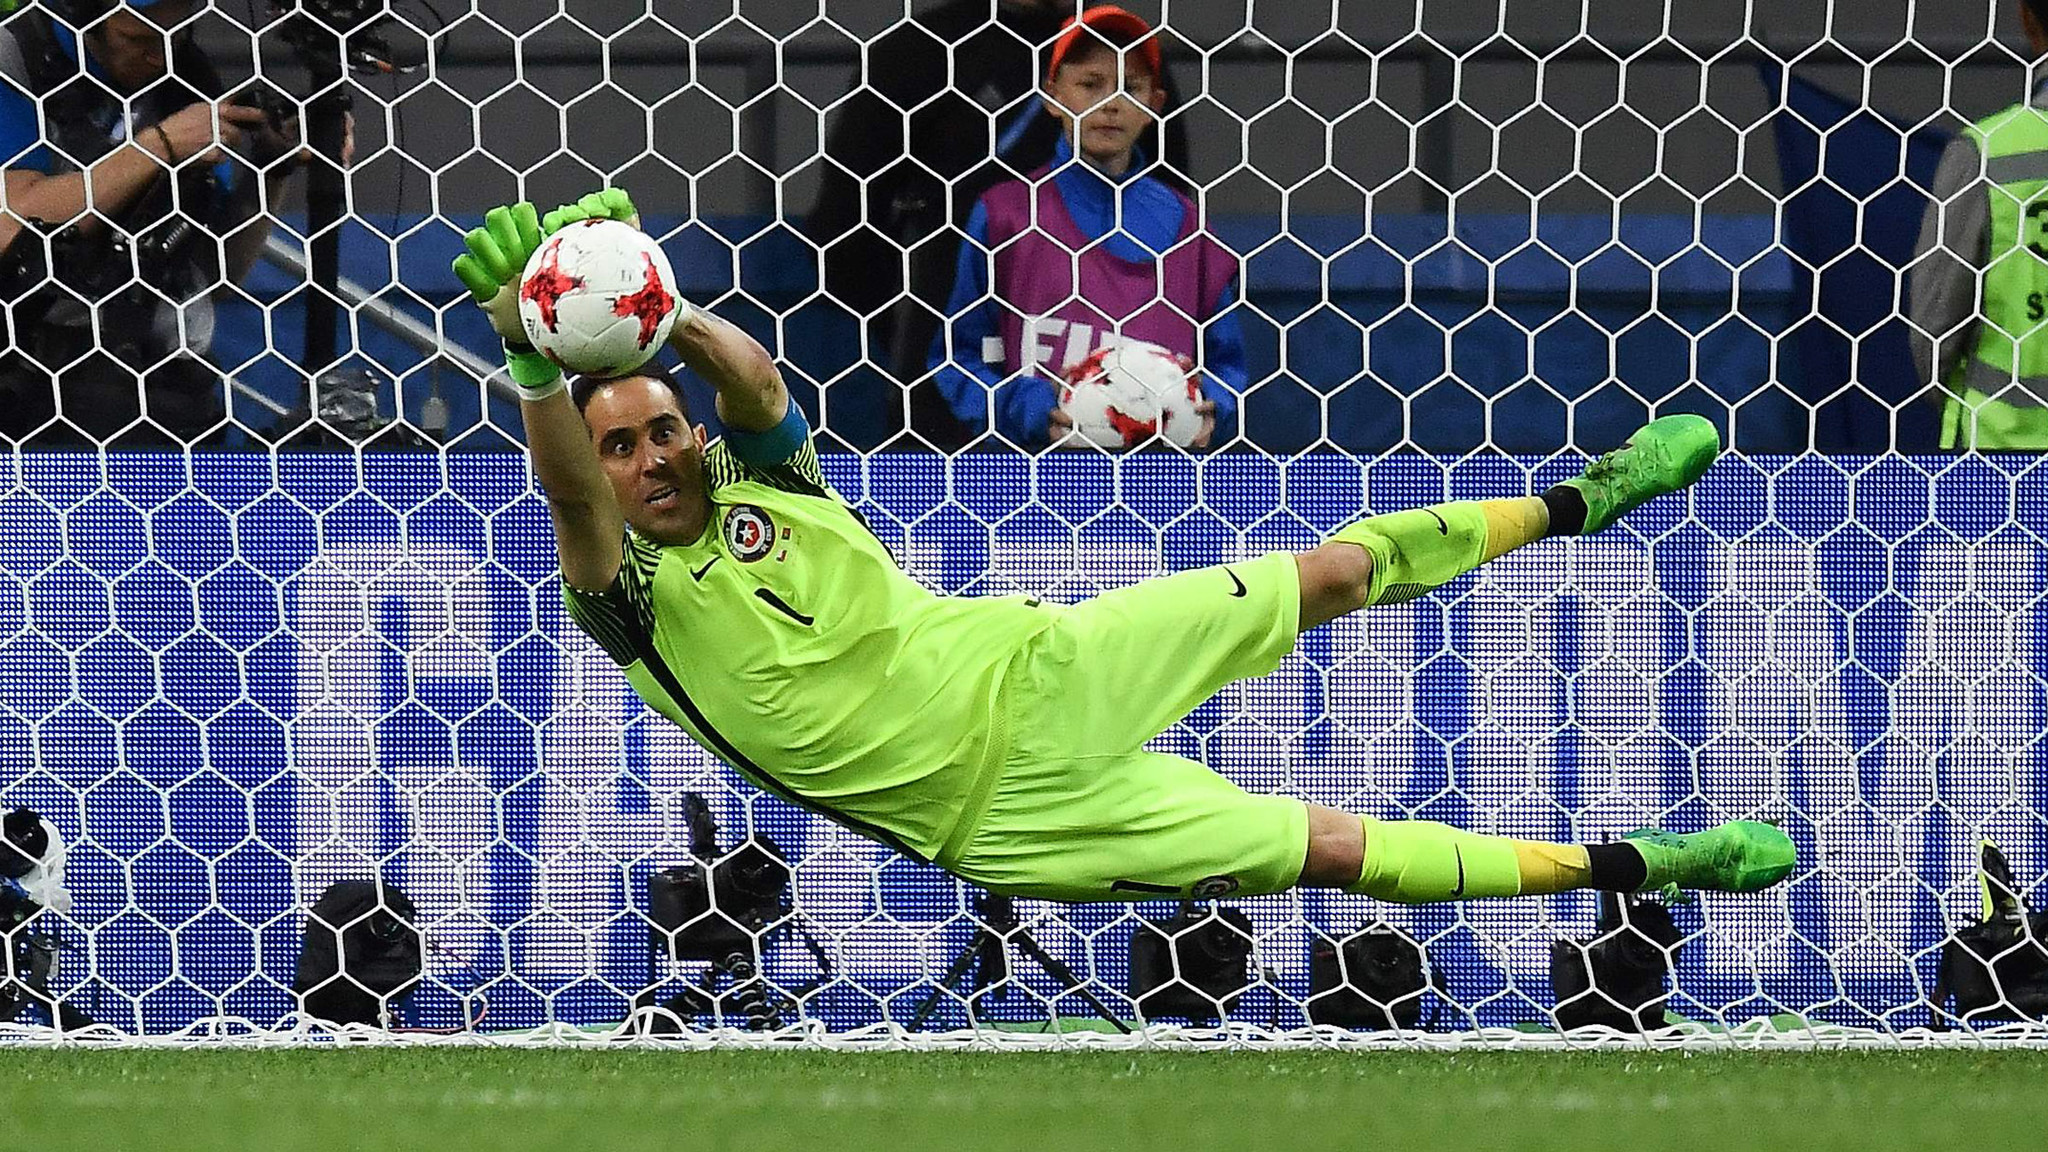 Confederations Cup Claudio Bravo helps save Chile in shootout